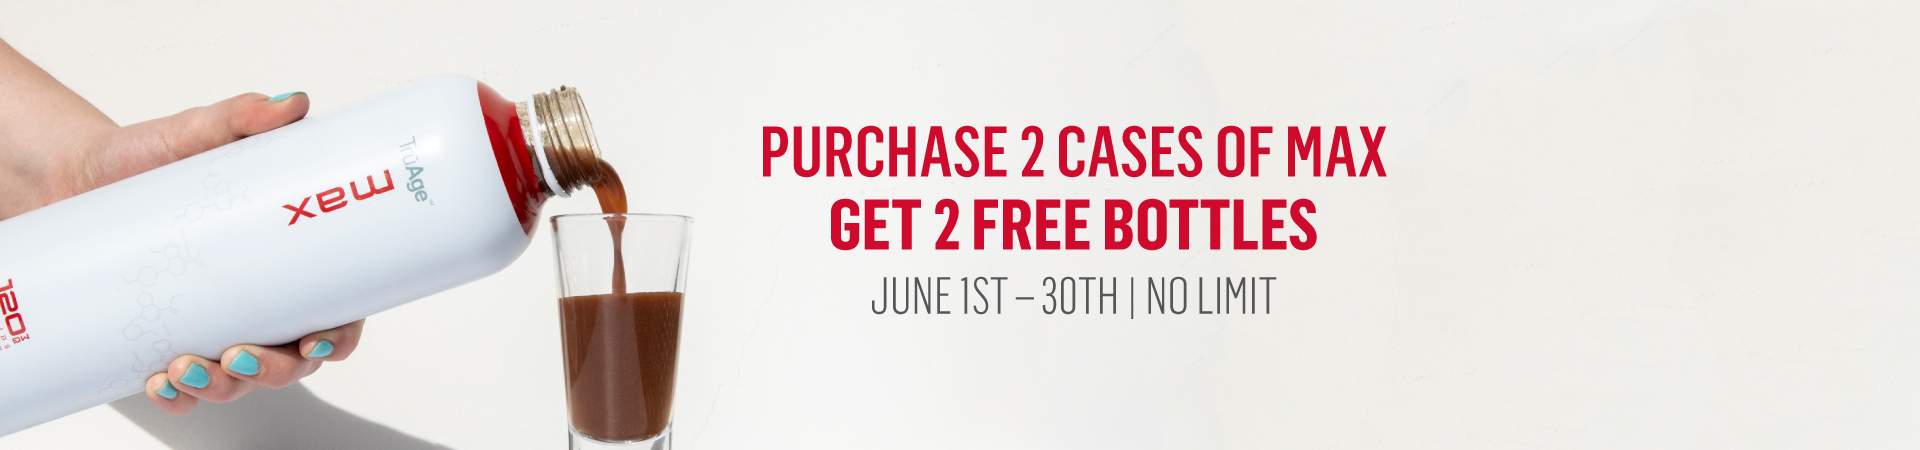 Max Buy 2 Cases Get 2 Bottles Free